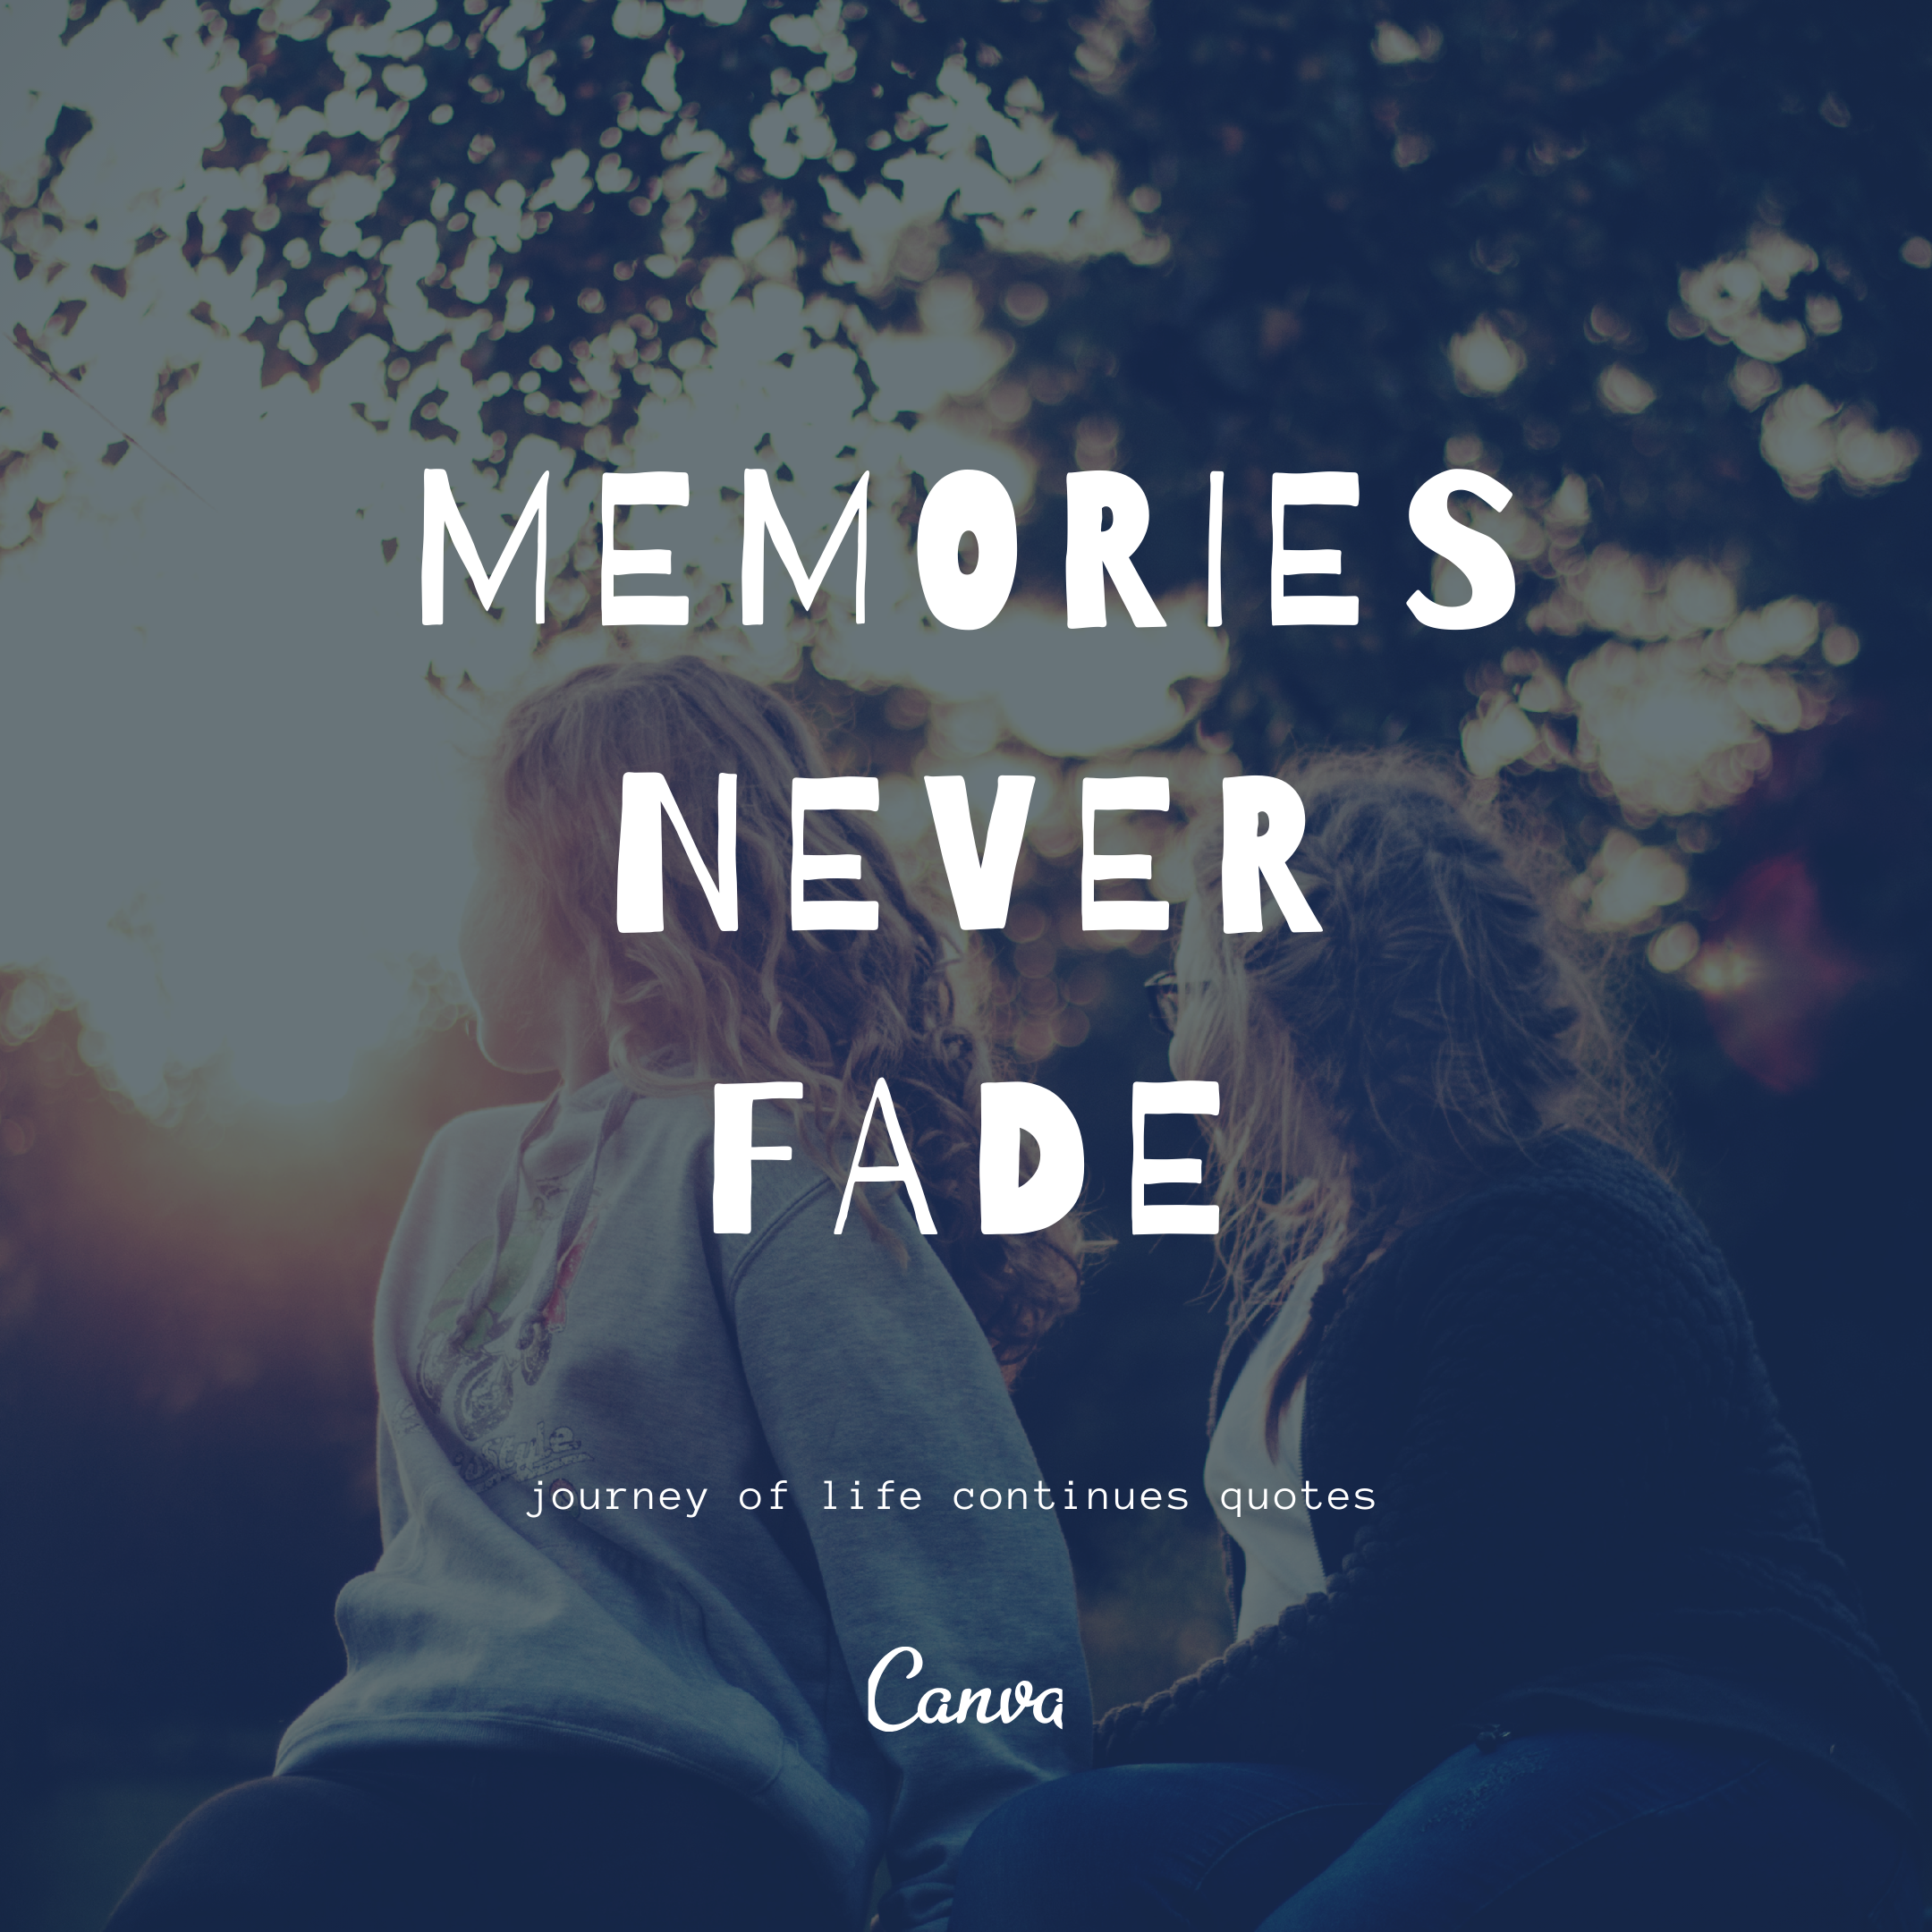 Memories never fade, life quotes , memories quotes , Journey of life continues quotes